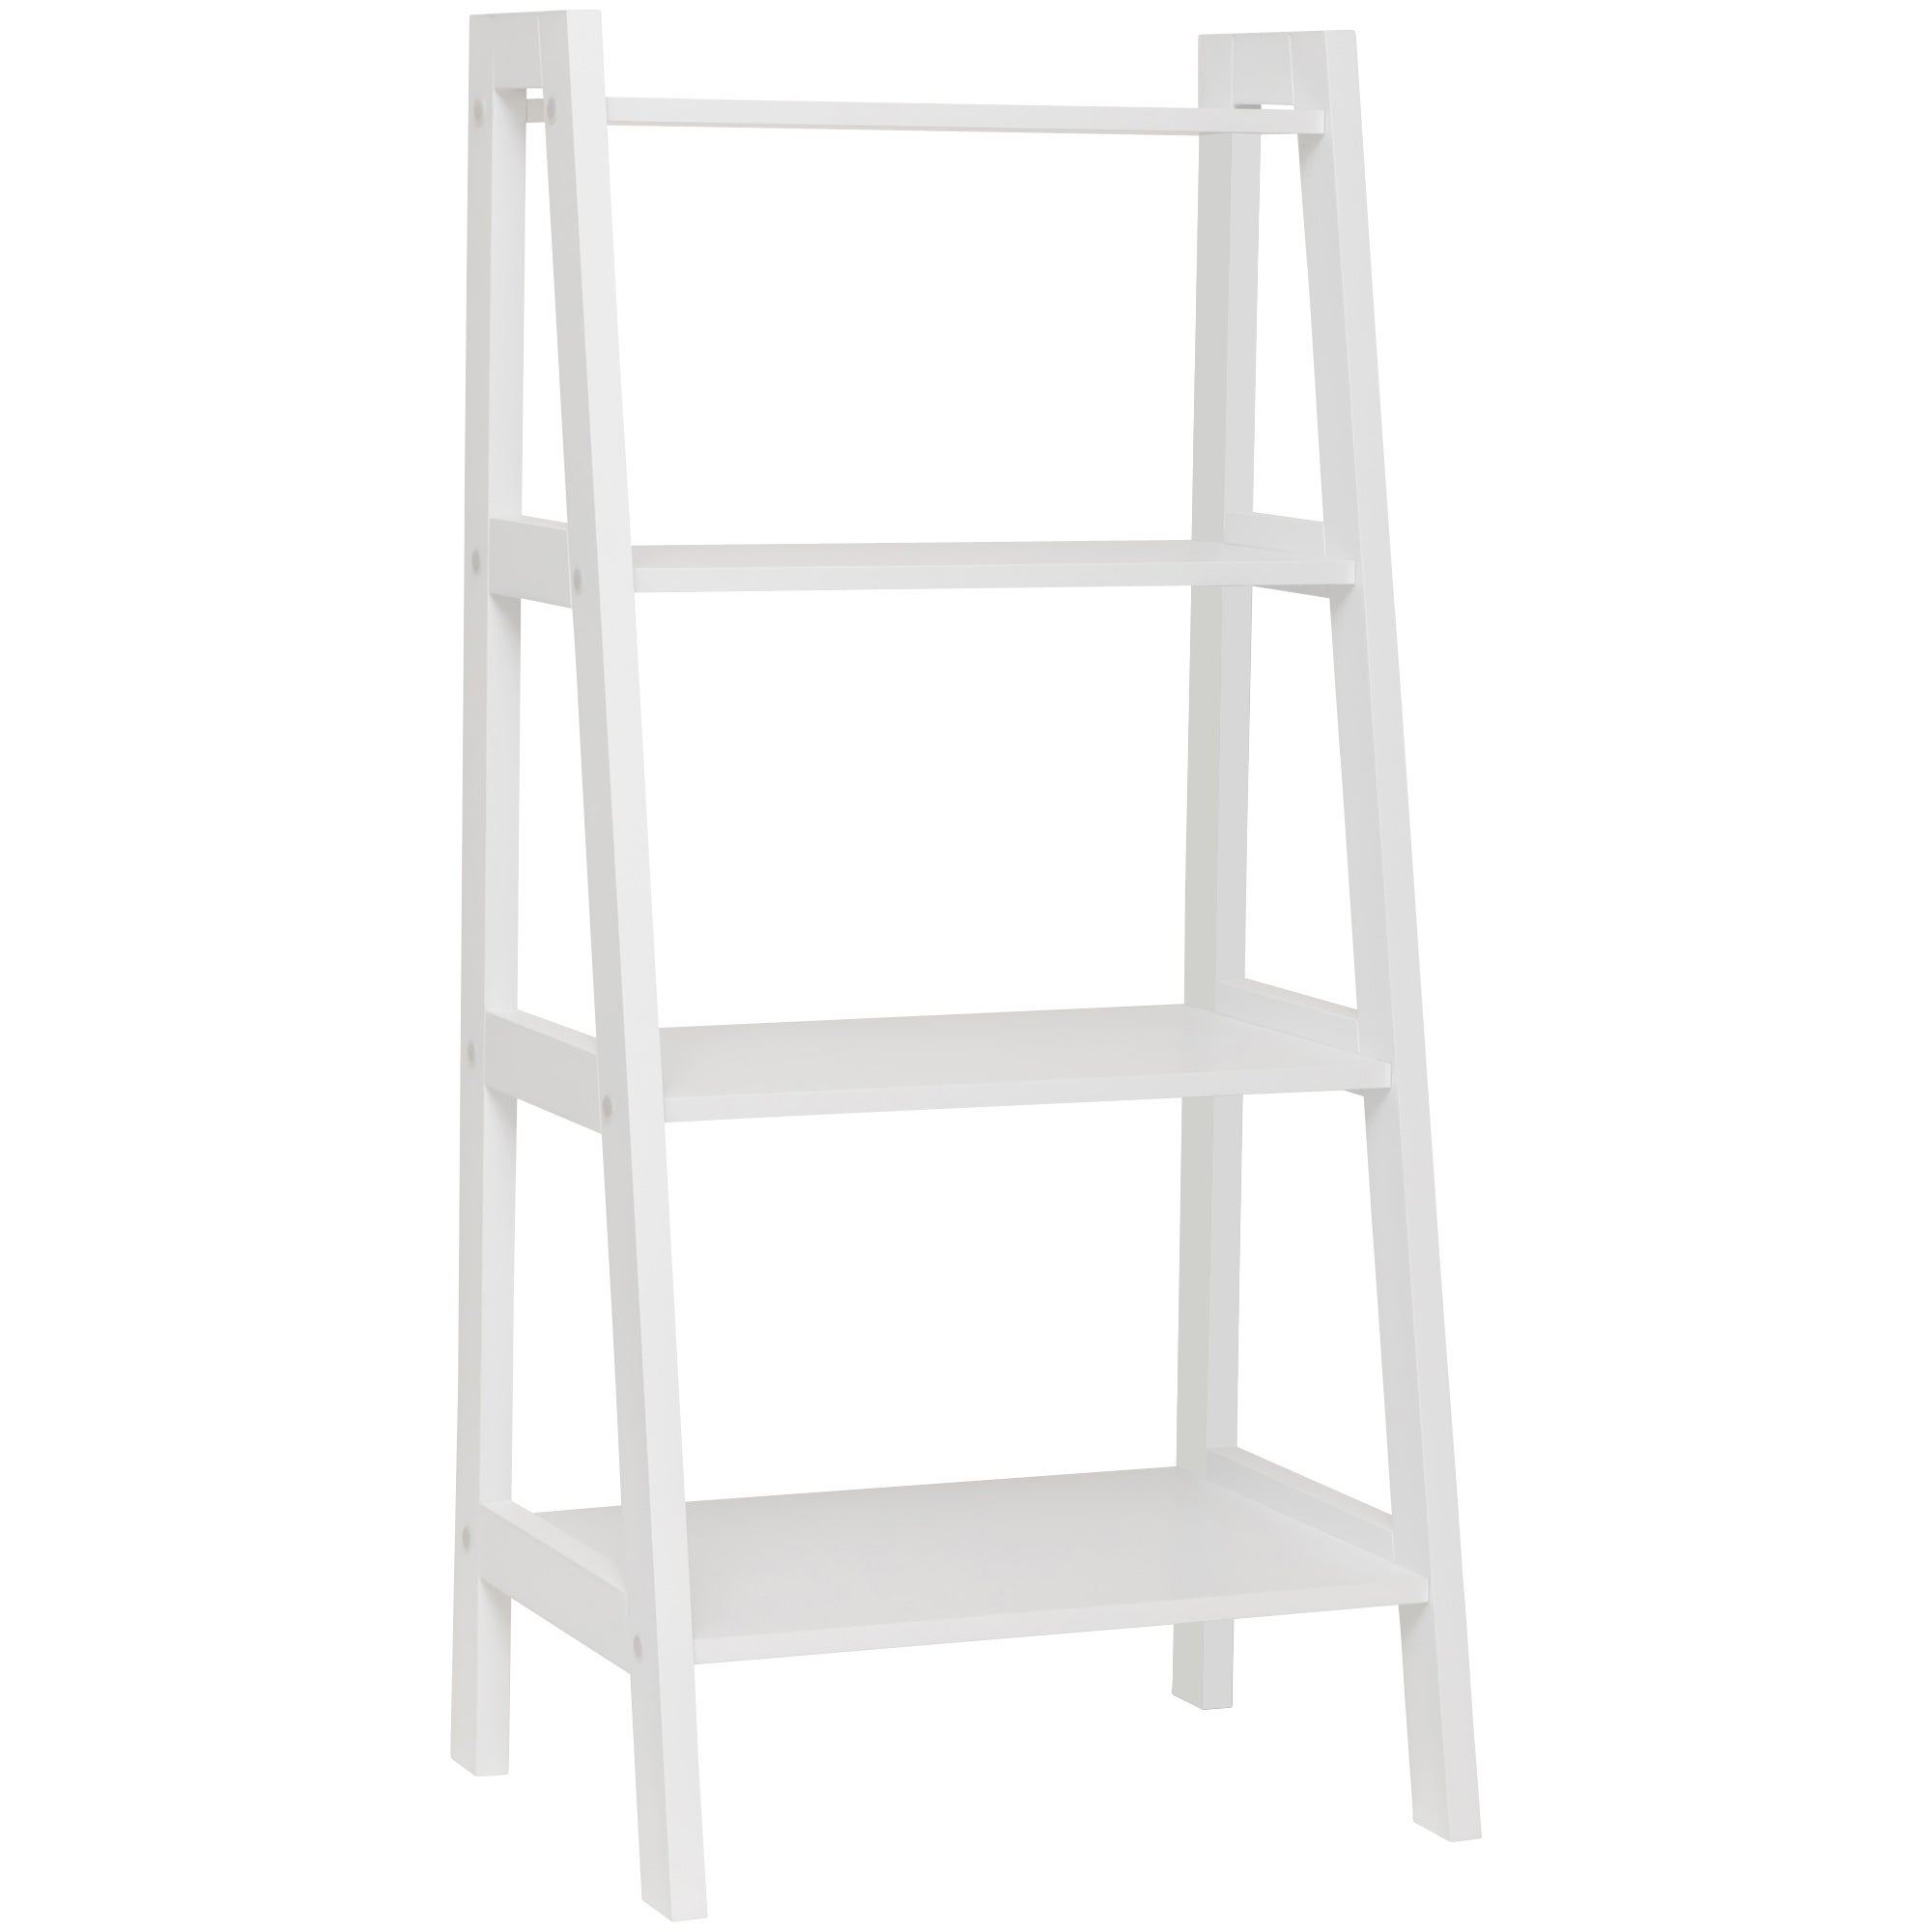 Maine 4 Tier MDF Ladder Display Shelves in White